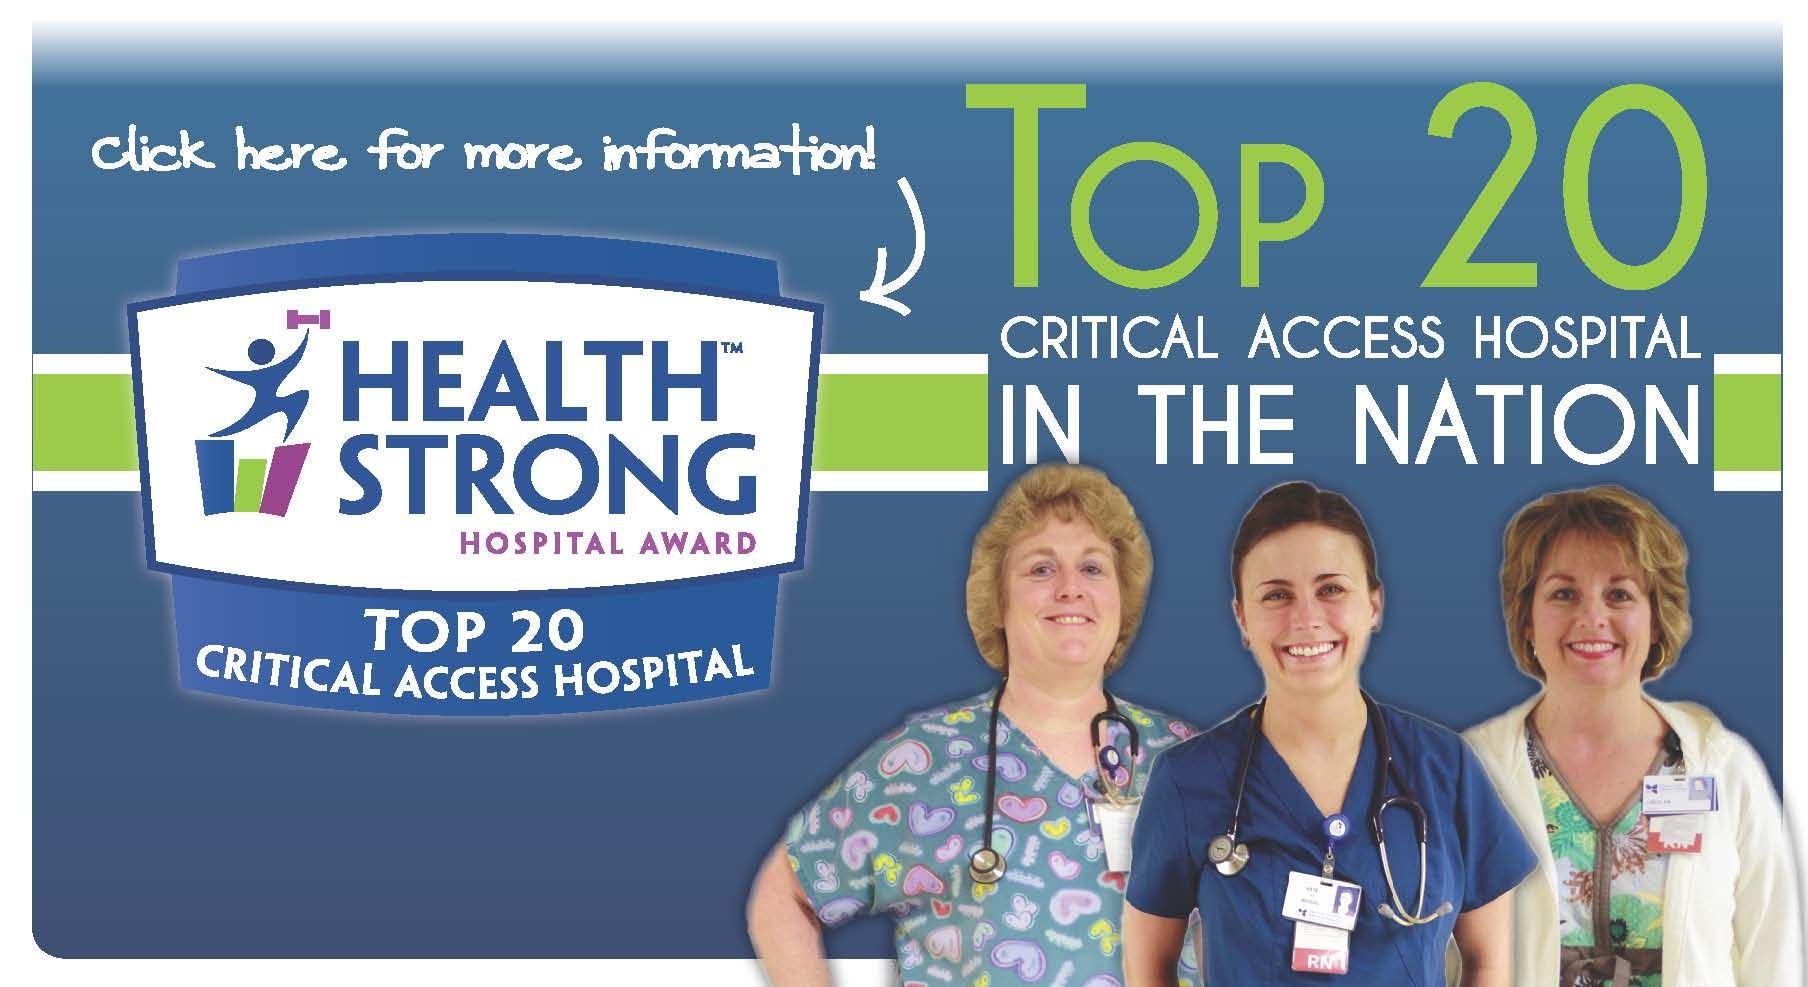 DCMH is proud to be named one of the TOP 20 critical access hospitals in the NATION! #DCMHgreensburg #YourHospital